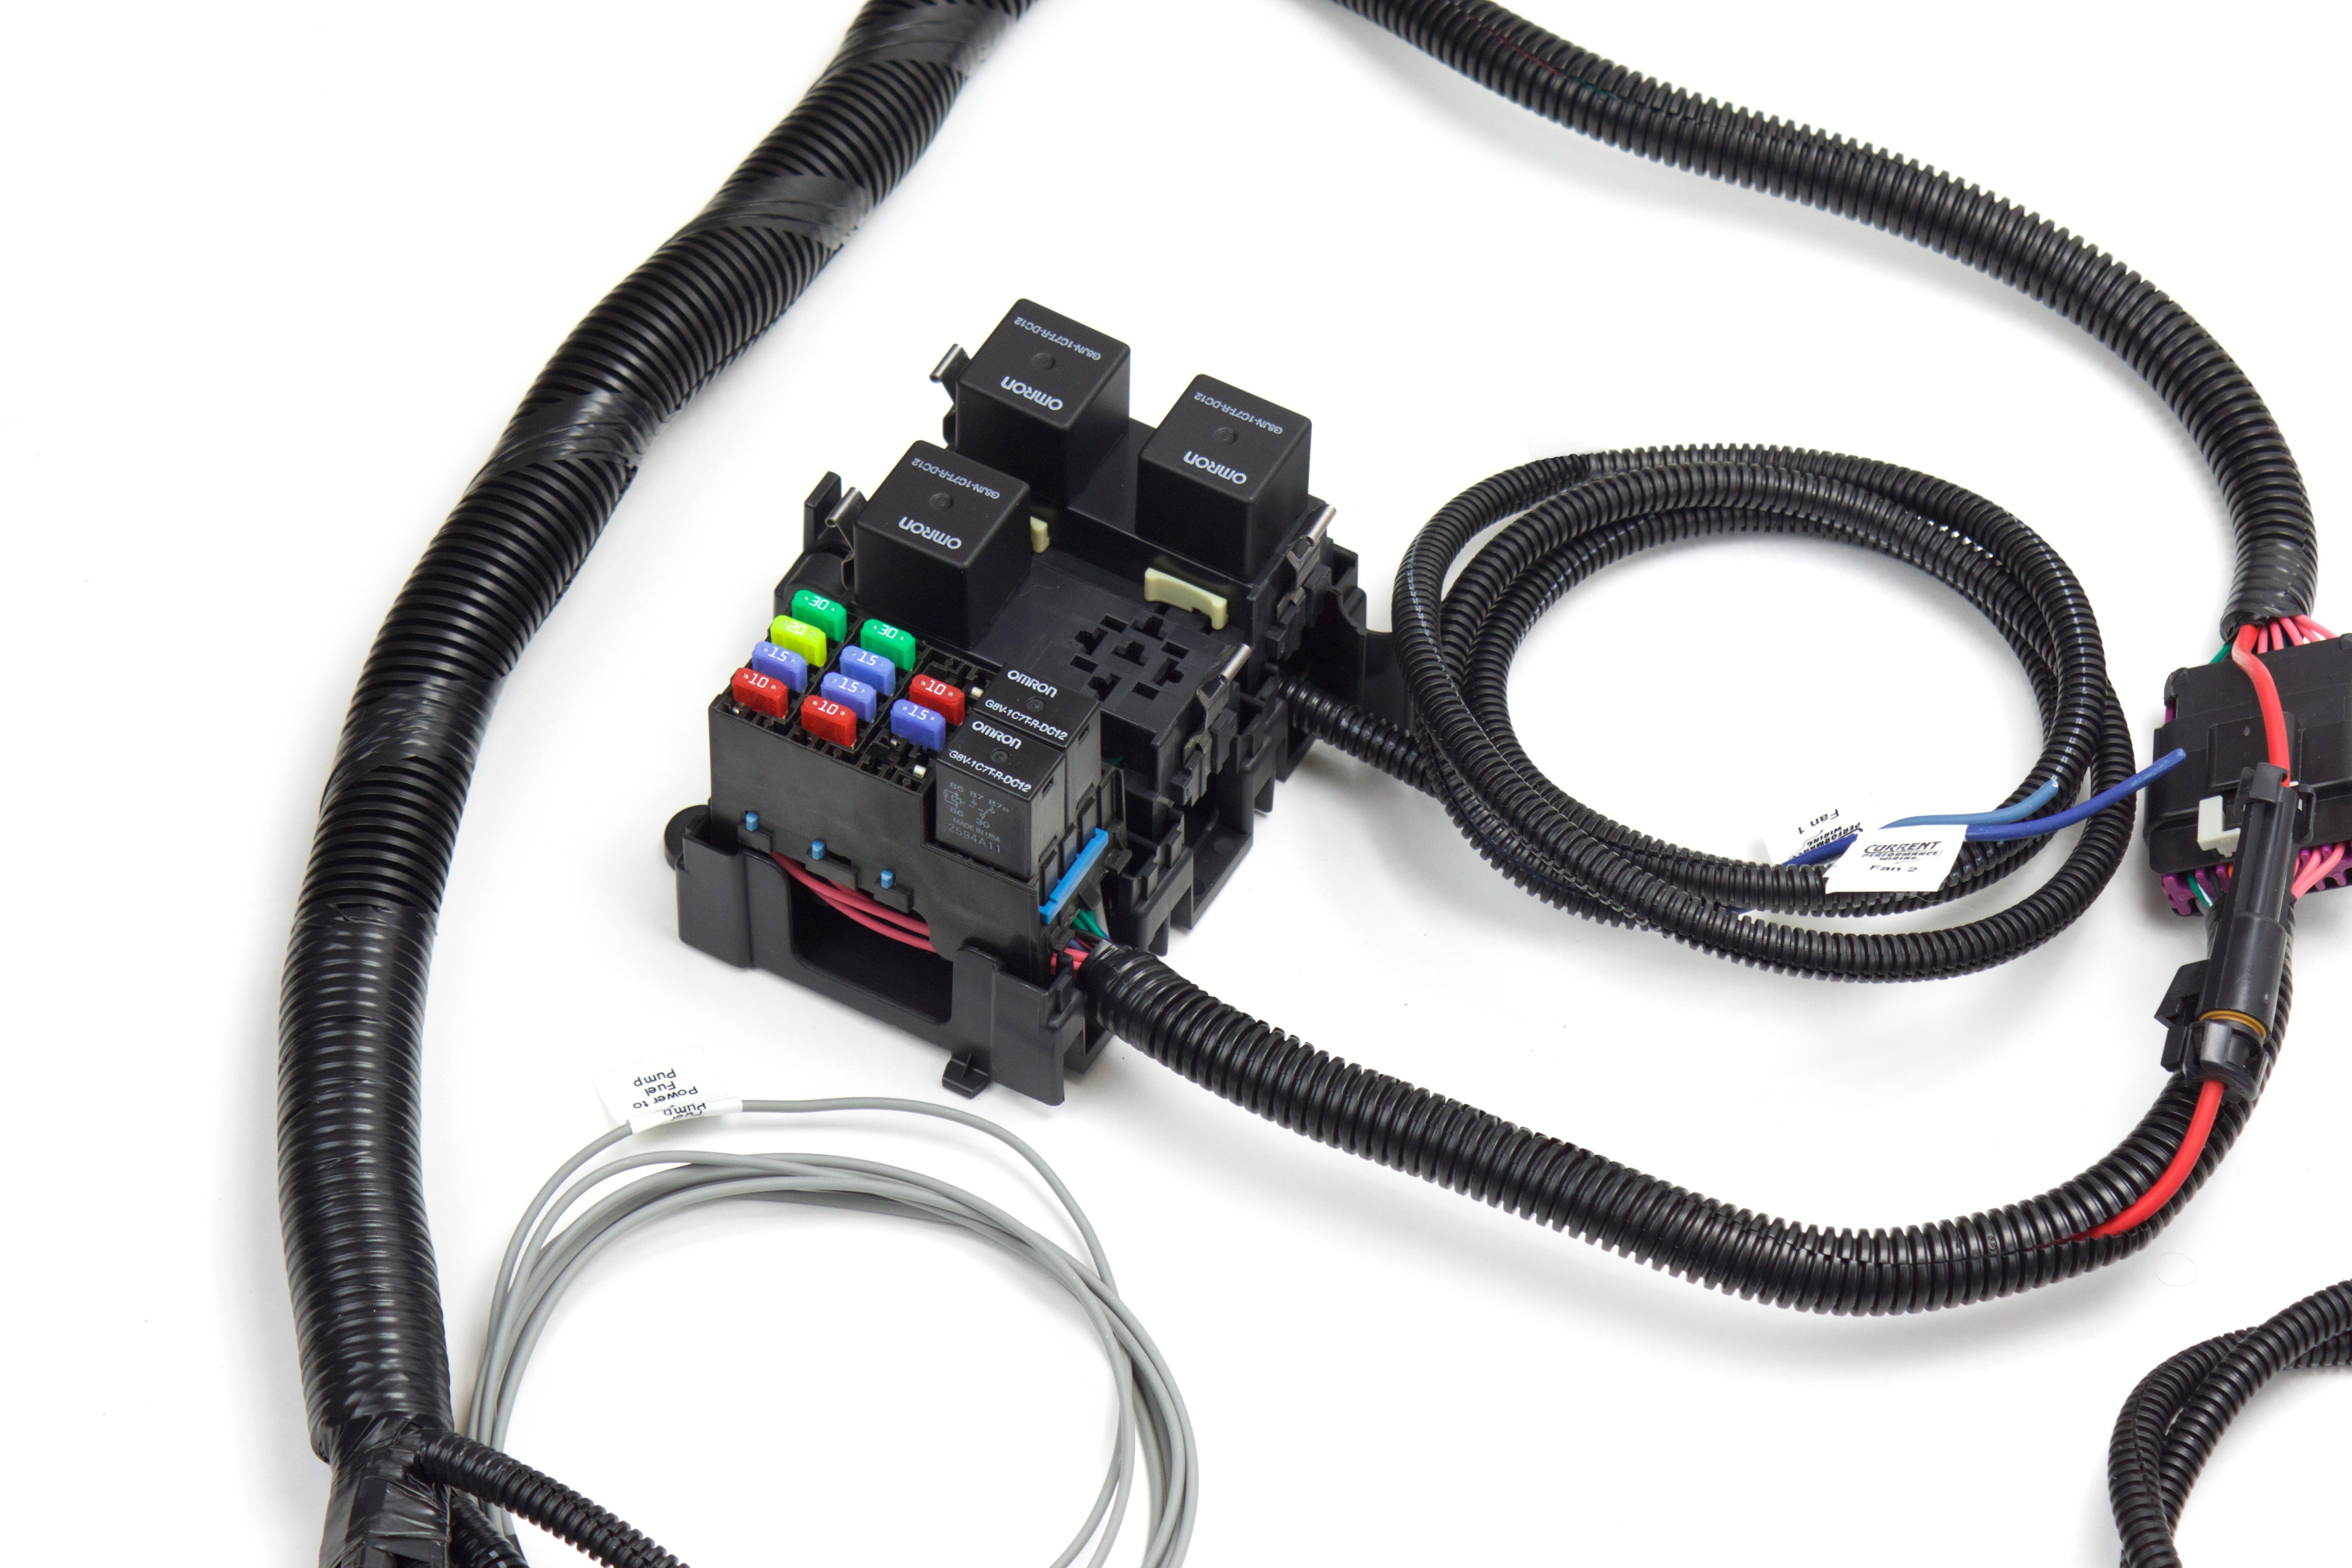 FuseBox_Close 58x ls2, ls3, ls7 stand alone engine harness for e38 ecu current 5 3 stand alone wiring harness at alyssarenee.co